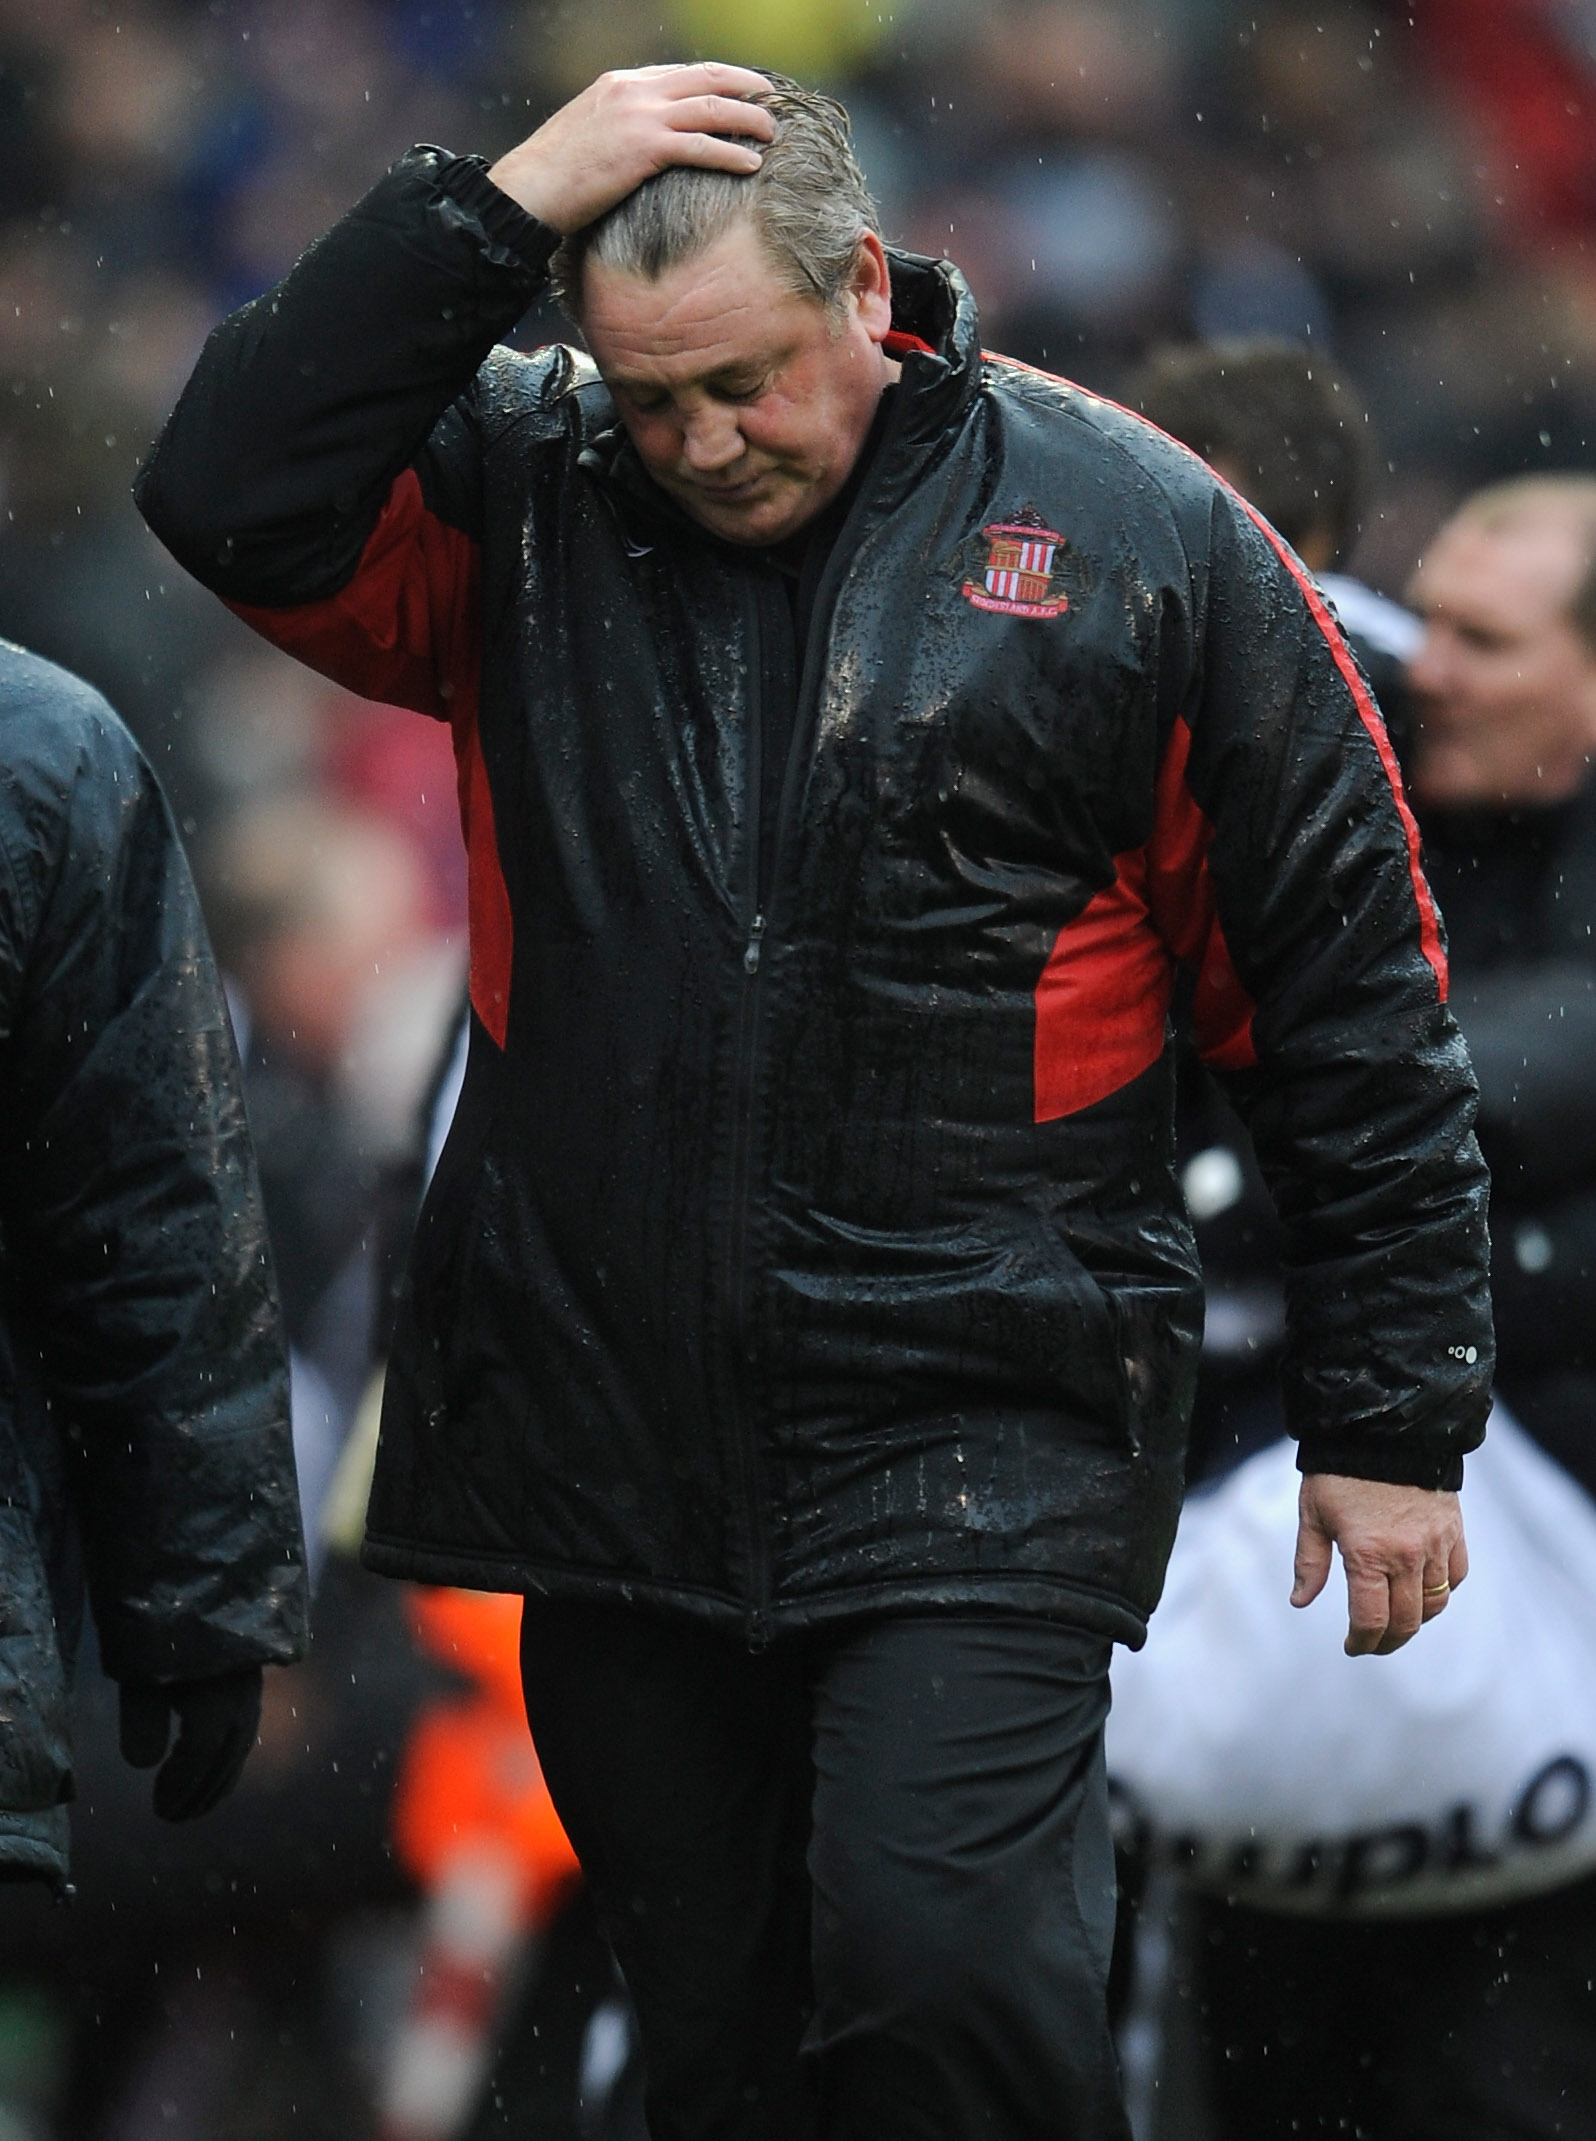 STOKE ON TRENT, ENGLAND - FEBRUARY 05: Sunderland manager Steve Bruce looks dejected after the Barclays Premier League match between Stoke City and Sunderland at the Britannia Stadium on February 5, 2011 in Stoke on Trent, England.  (Photo by Michael Rega